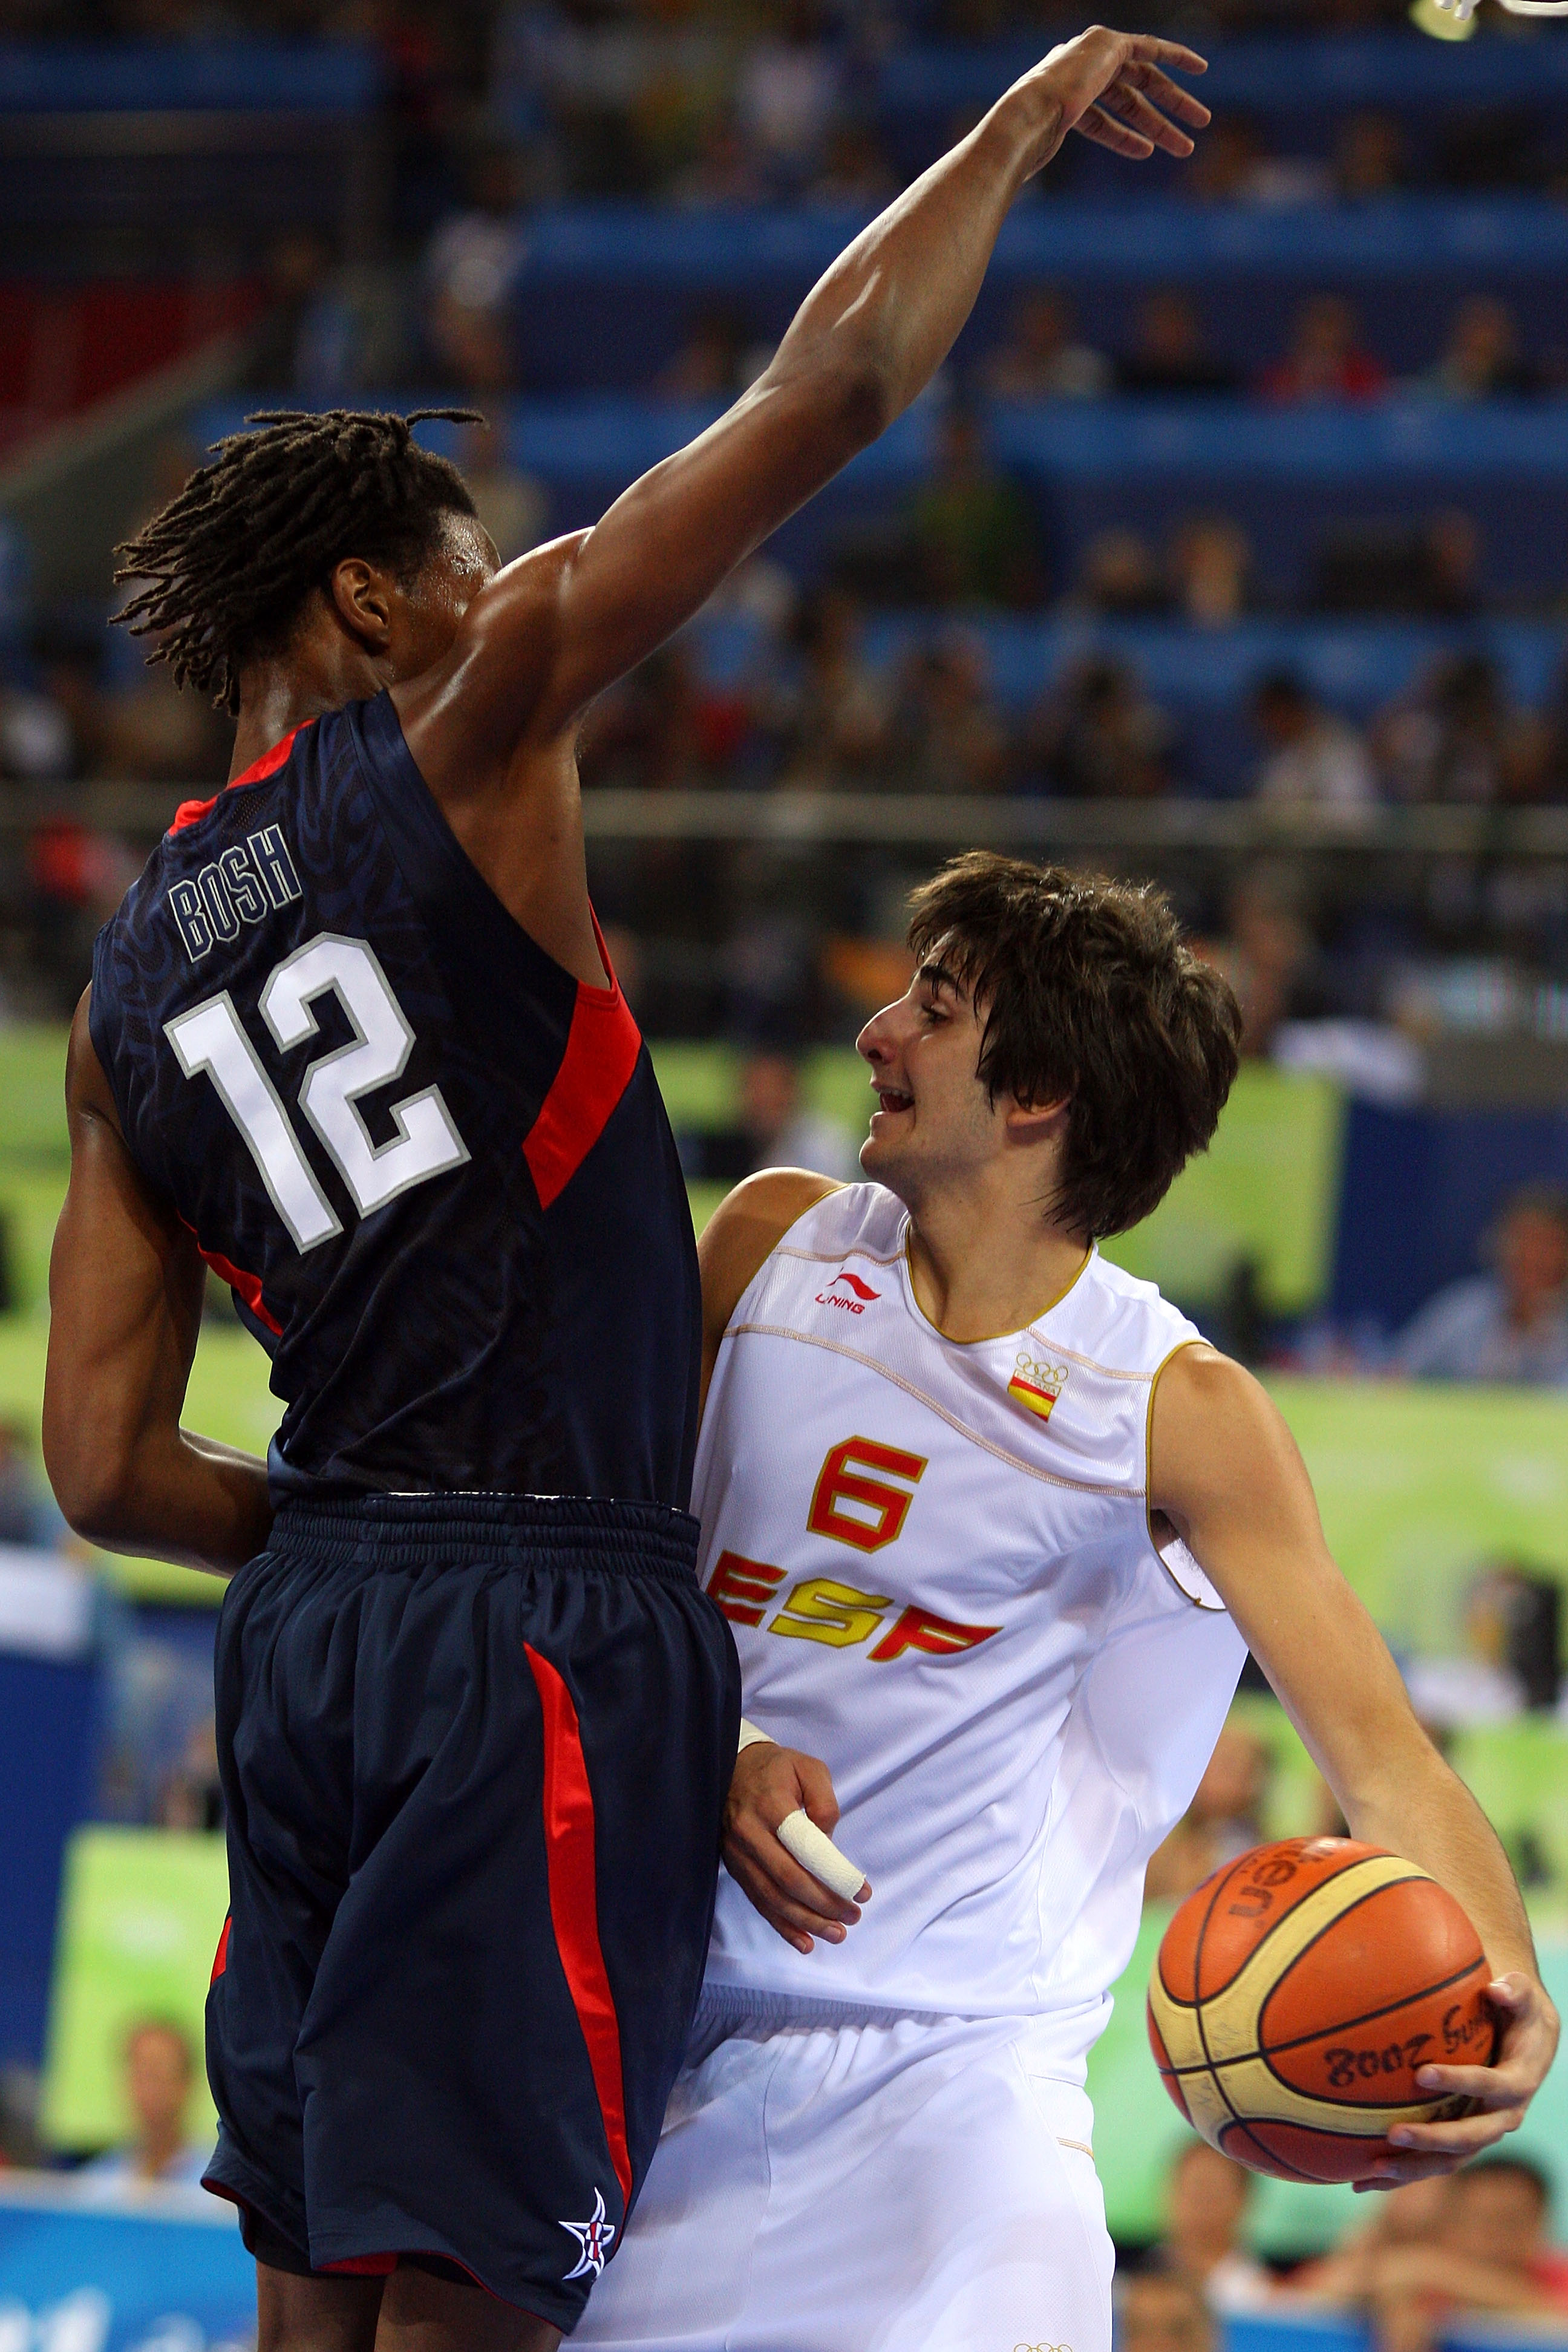 BEIJING - AUGUST 24:  Ricky Rubio #6 of Spain moves against the defense of Chris Bosh #12 of the United States in the gold medal game during Day 16 of the Beijing 2008 Olympic Games at the Beijing Olympic Basketball Gymnasium on August 24, 2008 in Beijing